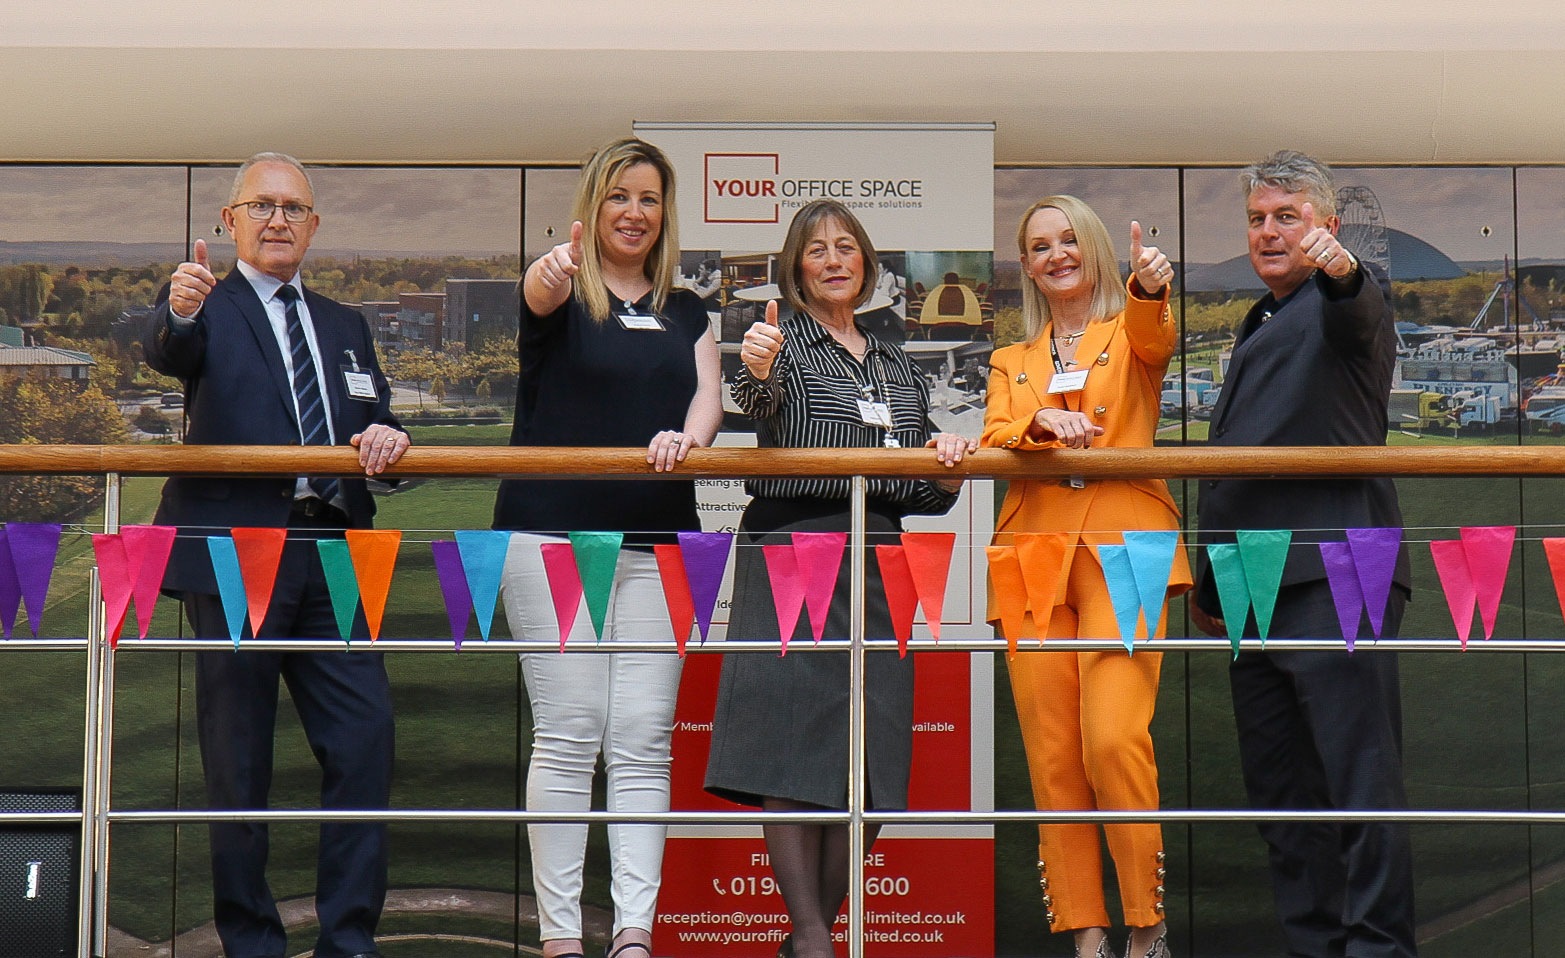 thumbs up for the launch of your Office Space